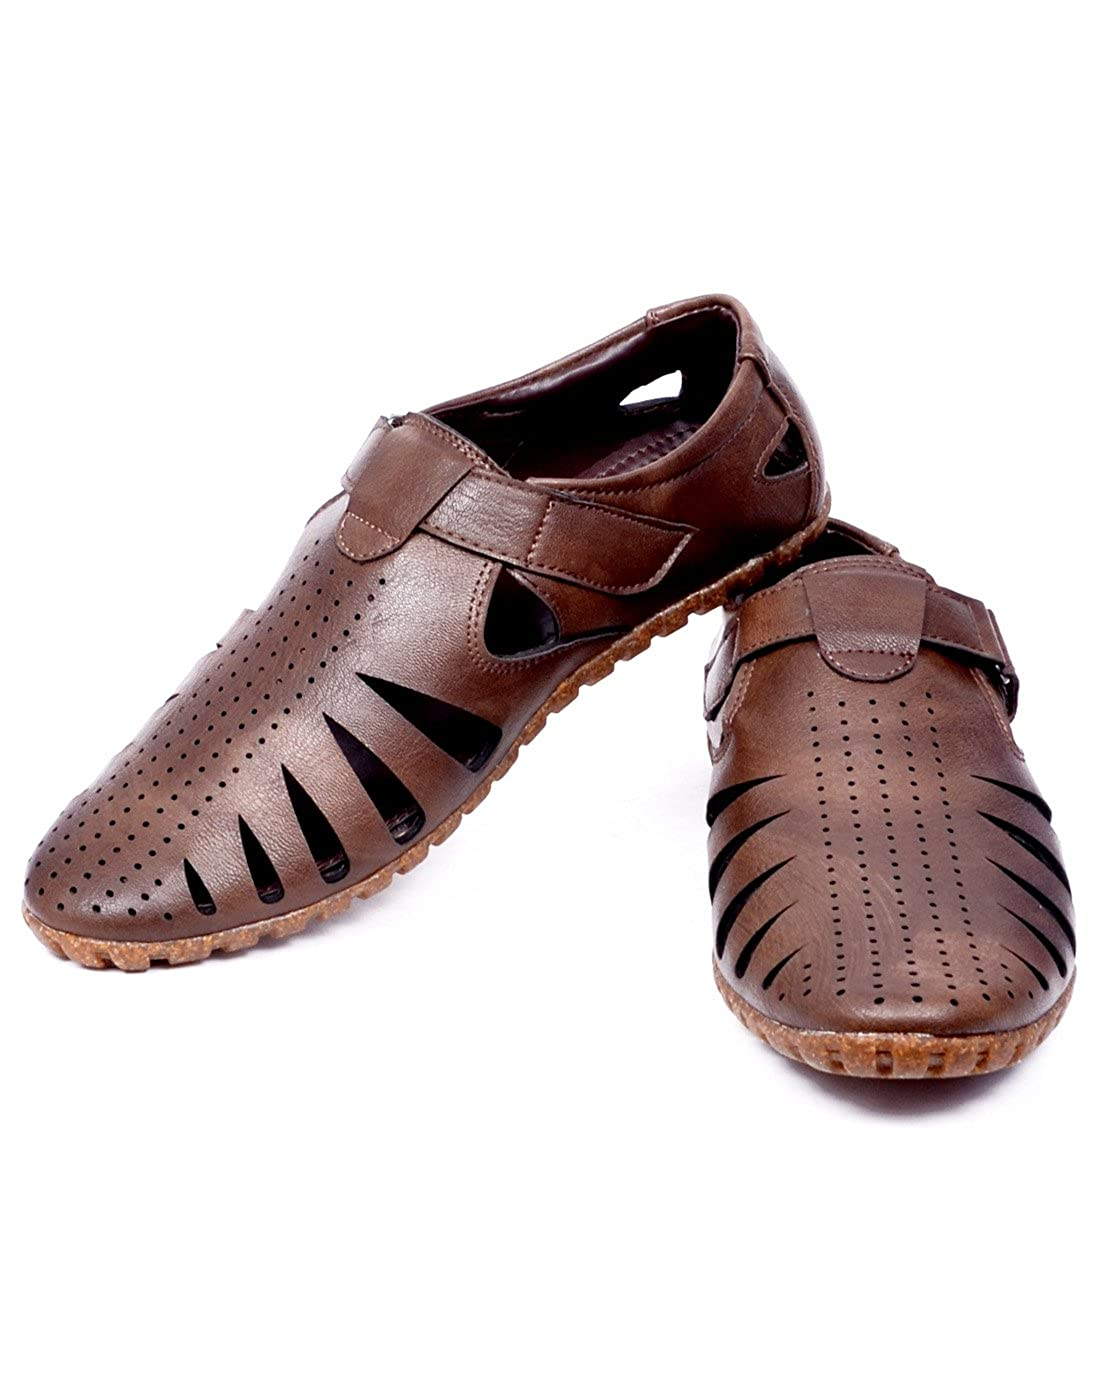 70424d3aa1c3b EL PASO Men s Faux Leather Tan Impressive Comfortable Men Sandals  Buy  Online at Low Prices in India - Amazon.in